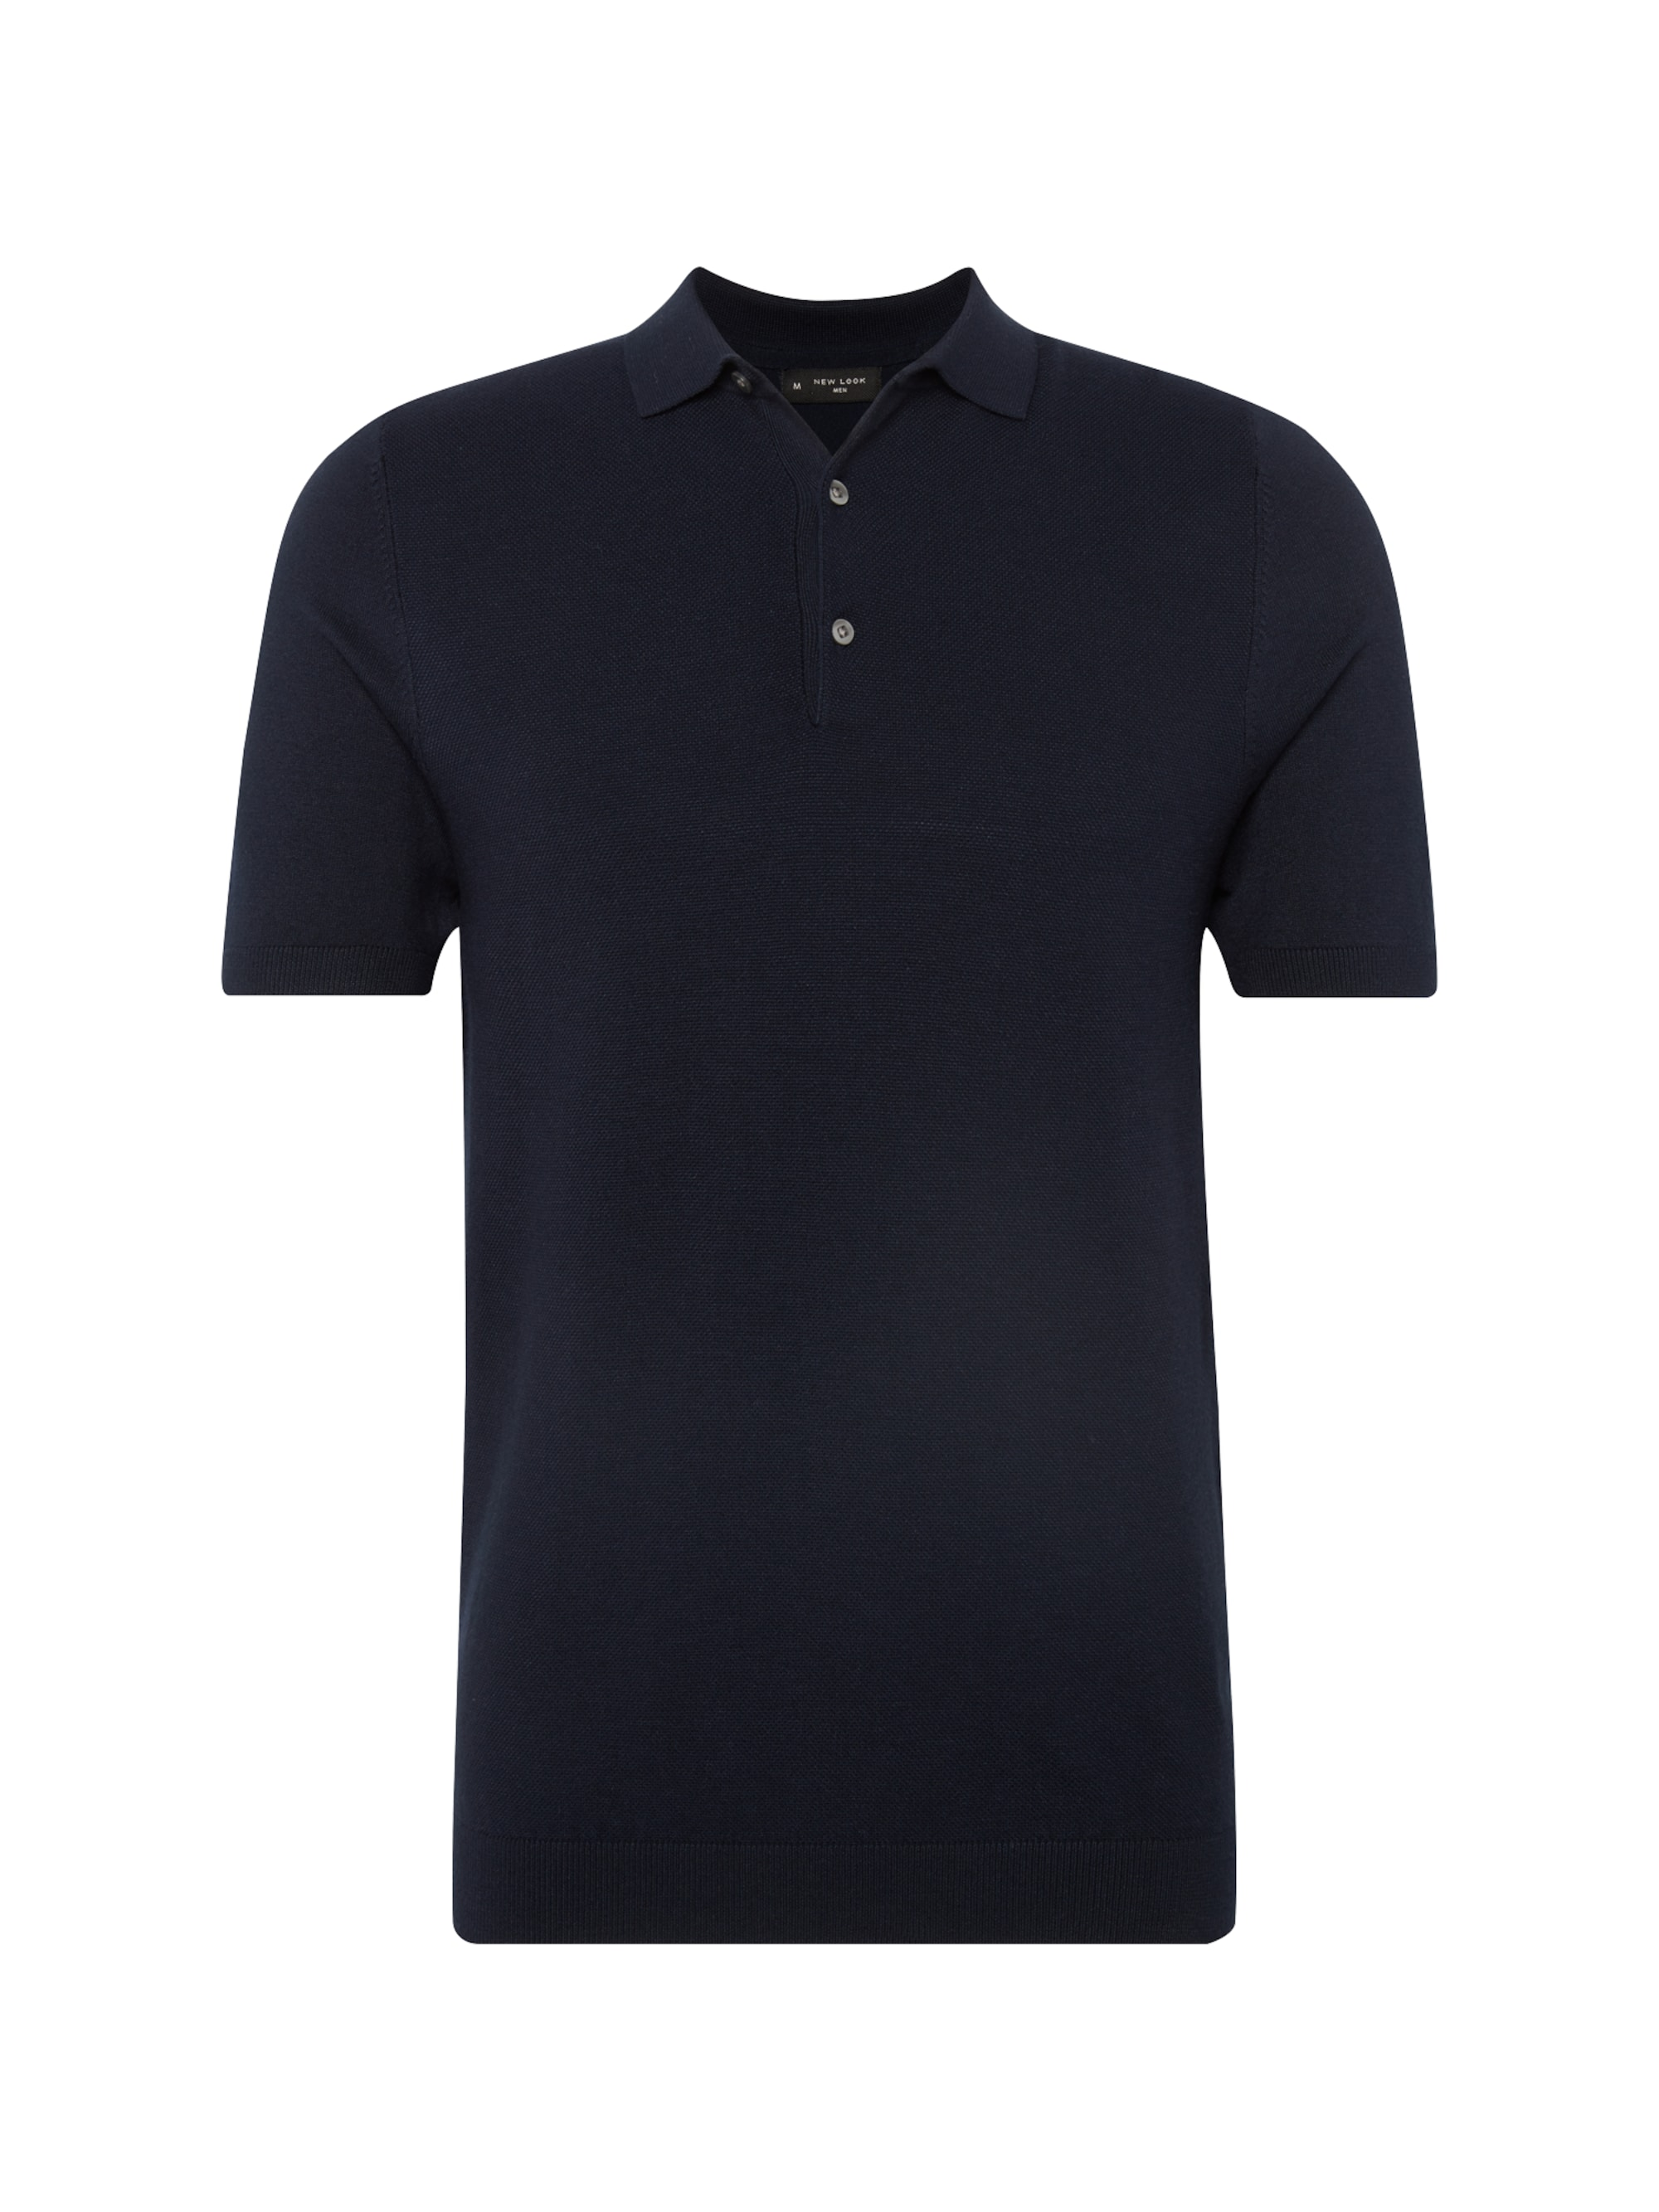 Shirt 'RP 1 27.10 MW SS SLIM FIT TEXTURED POLO'